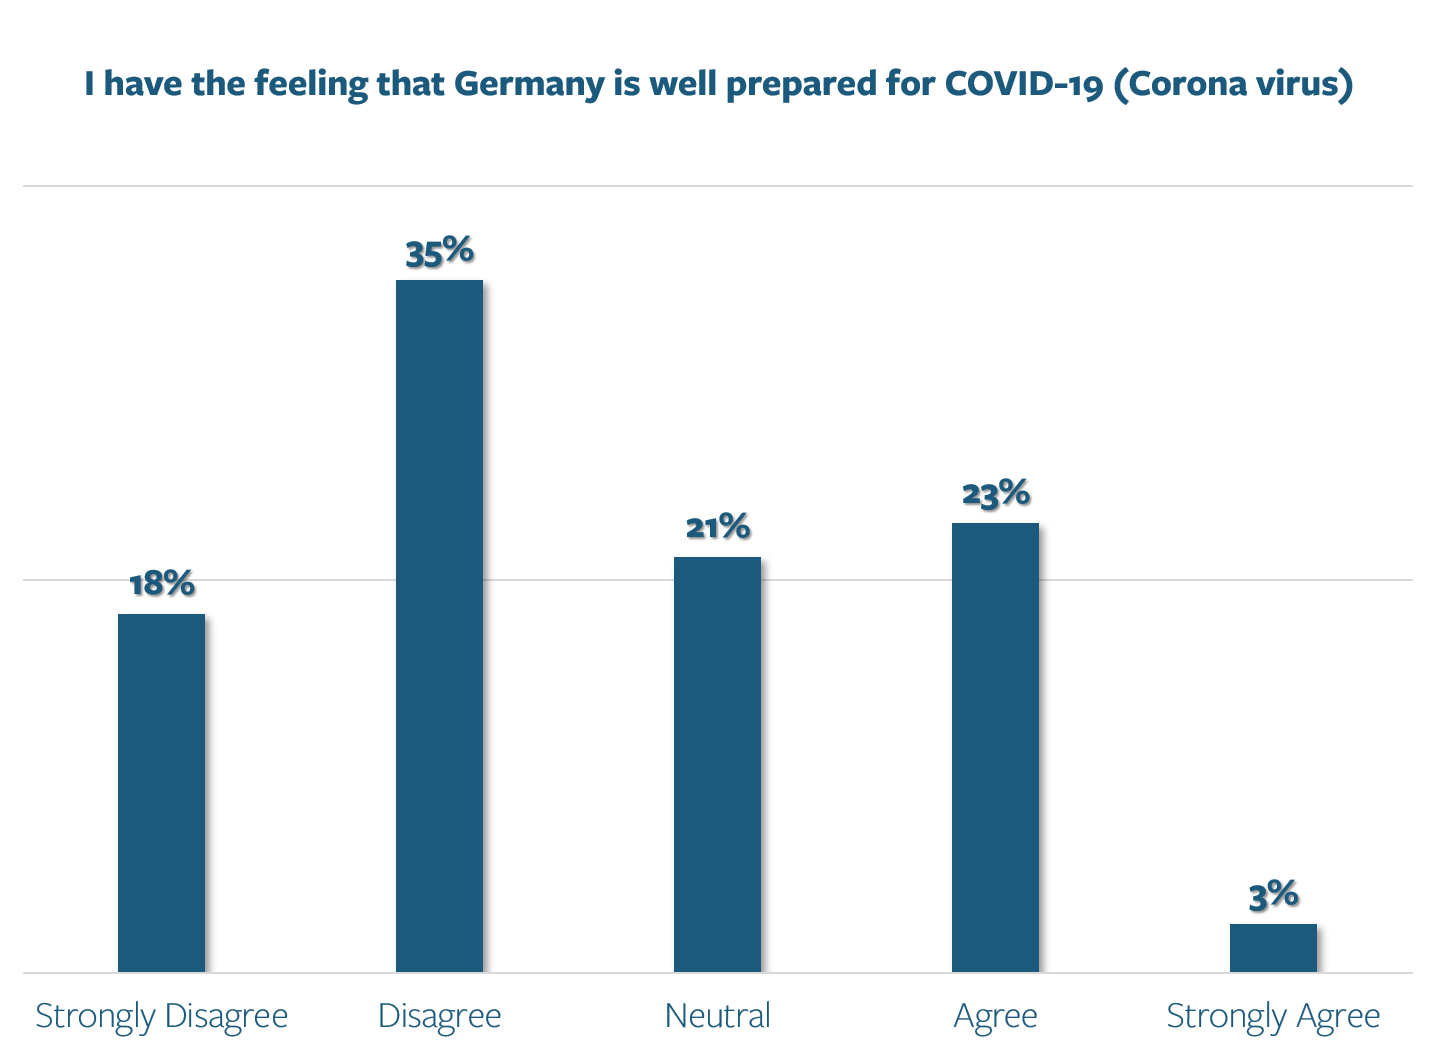 Patient Survey - Is Germany well prepared